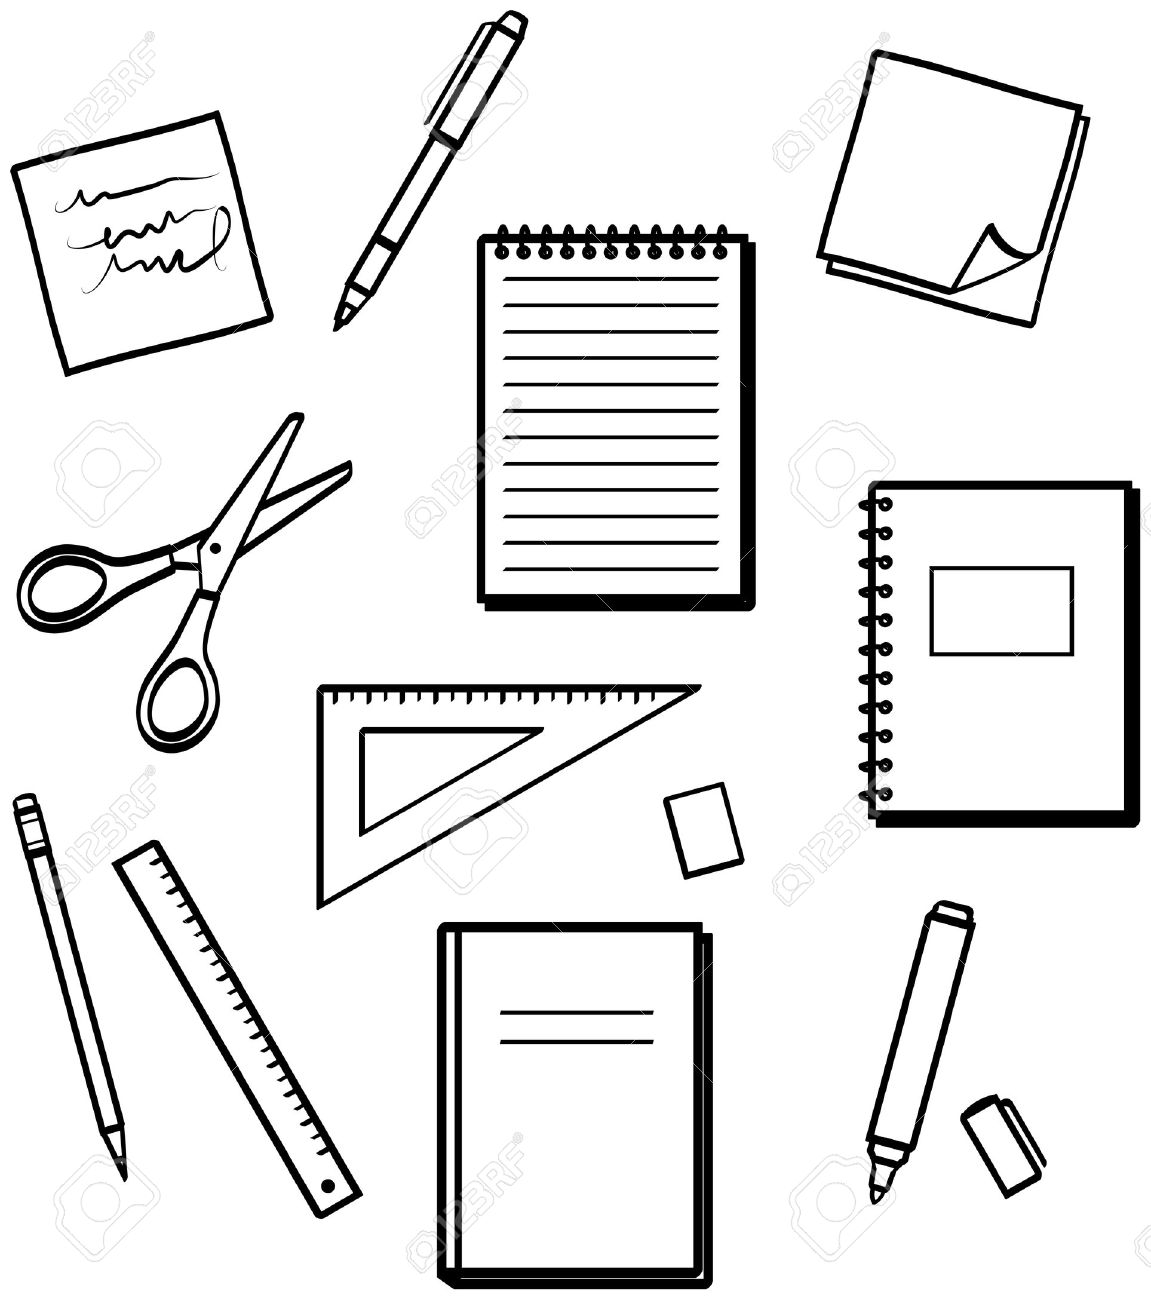 School Stationery Clipart Black And White.